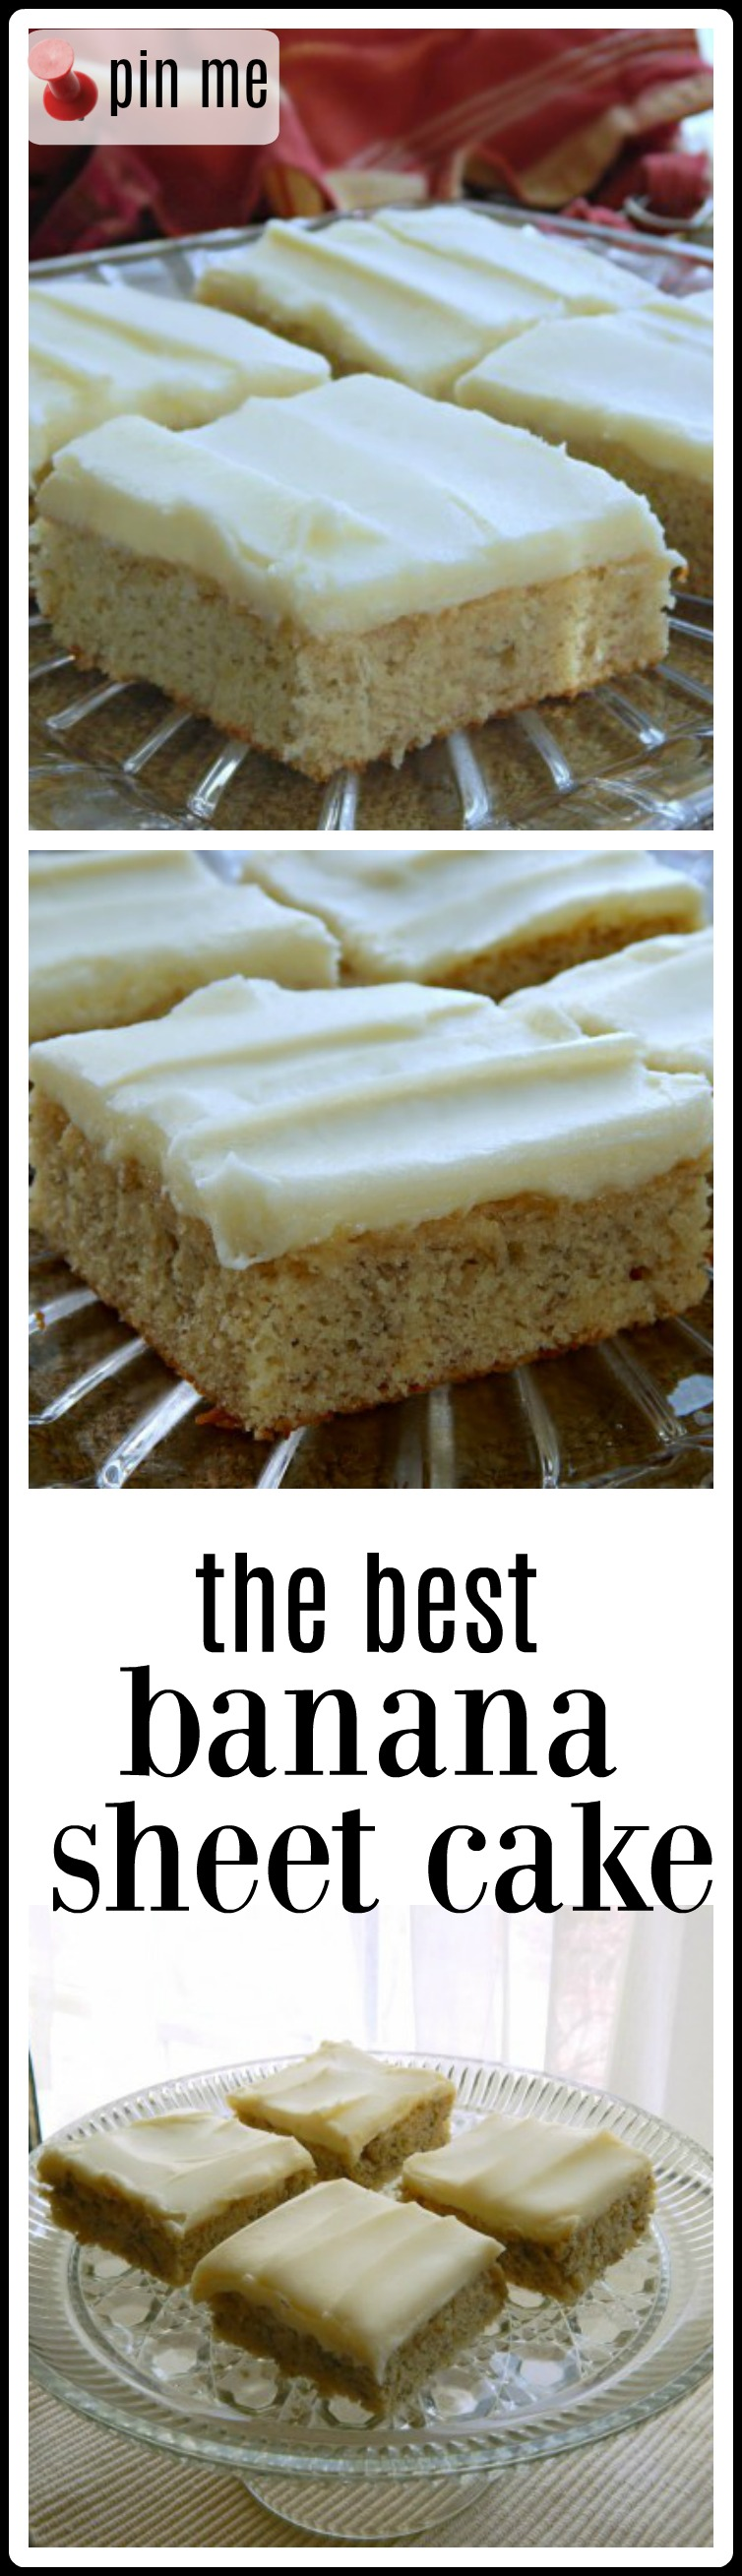 Banana Sheet Cake with Cream Cheese Frosting: this is a rich, moist, bursting with banana flavor cake topped with a (not too sweet) cream cheese frosting, passed to me by a co-worker who is a potluck queen and treasured ever since. #BananaSheetCake #BestBananaSheetCake